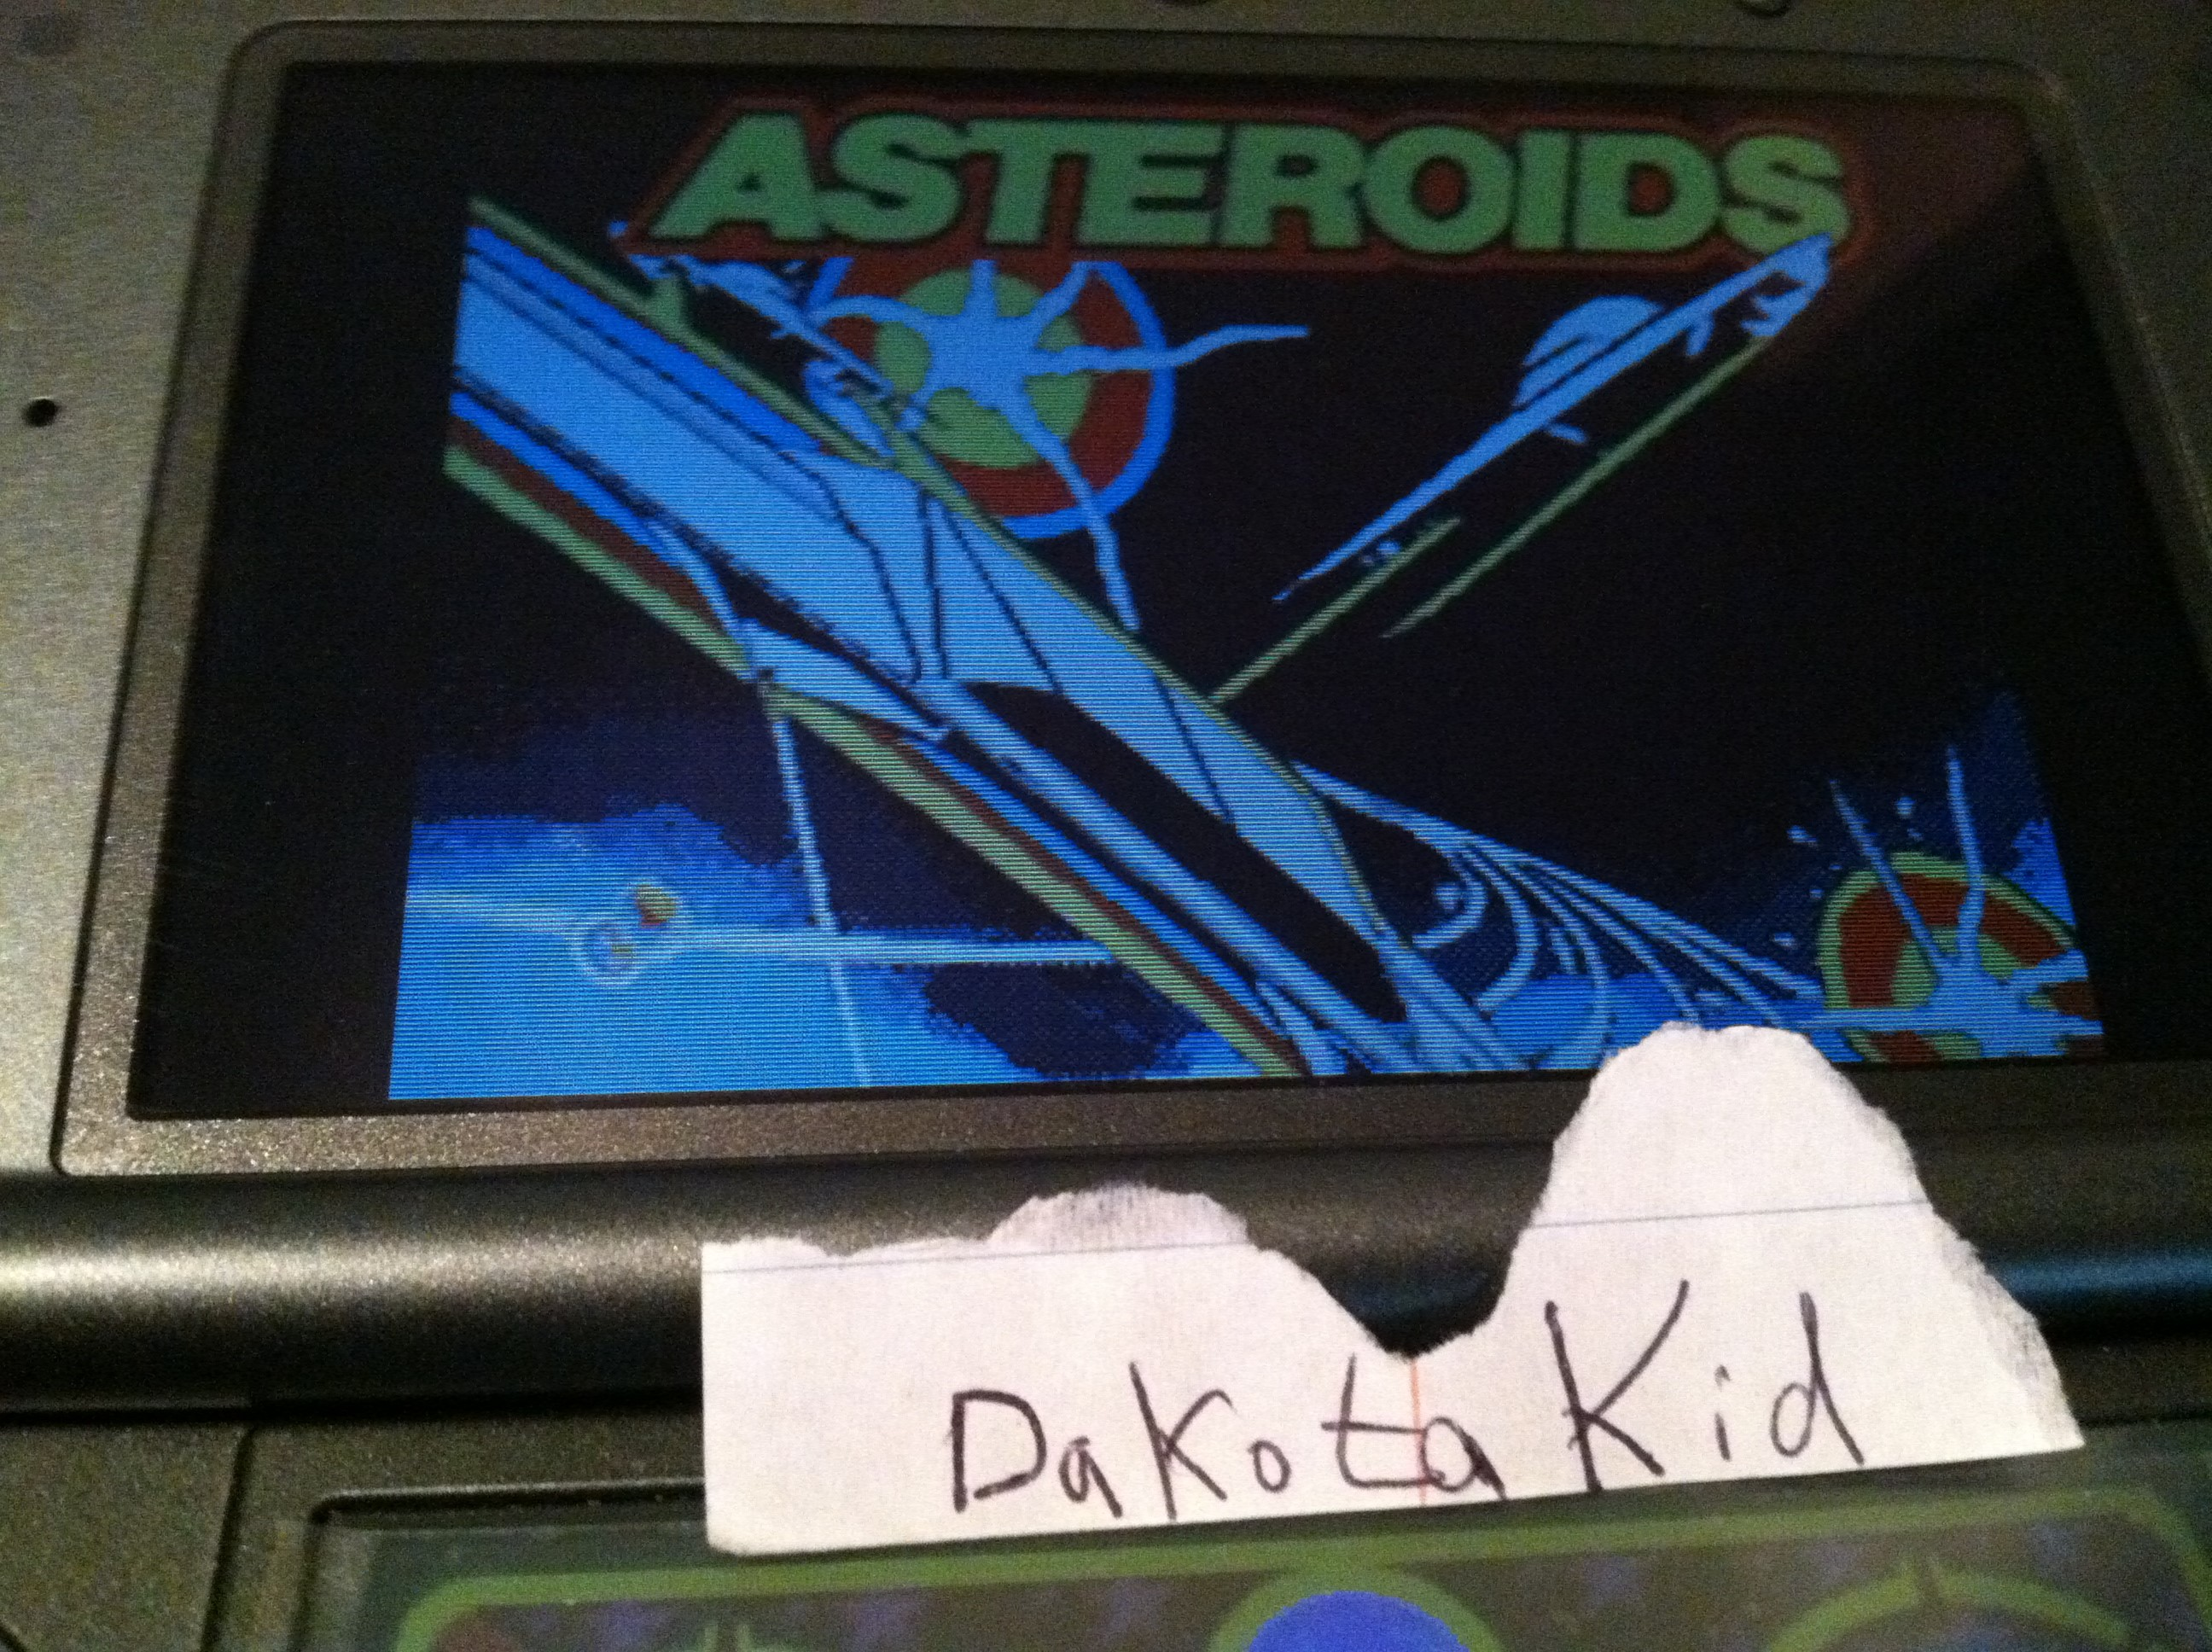 DakotaKid: Retro Atari Classics: Asteroids [Arcade] (Nintendo DS) 15,860 points on 2017-11-30 17:55:32